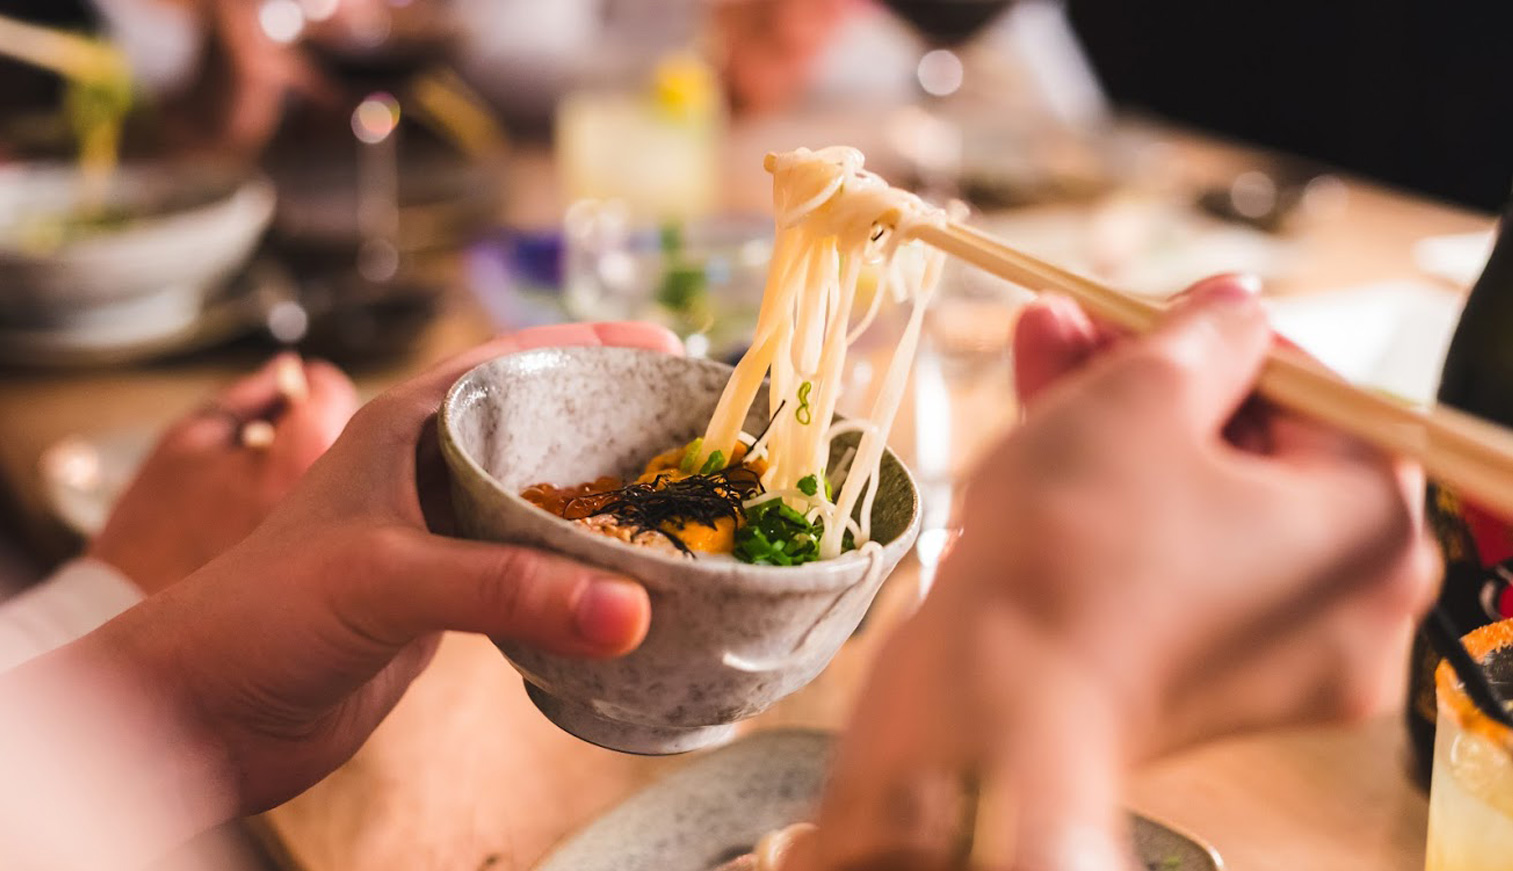 person holding a bowl eating noodles with chopsticks